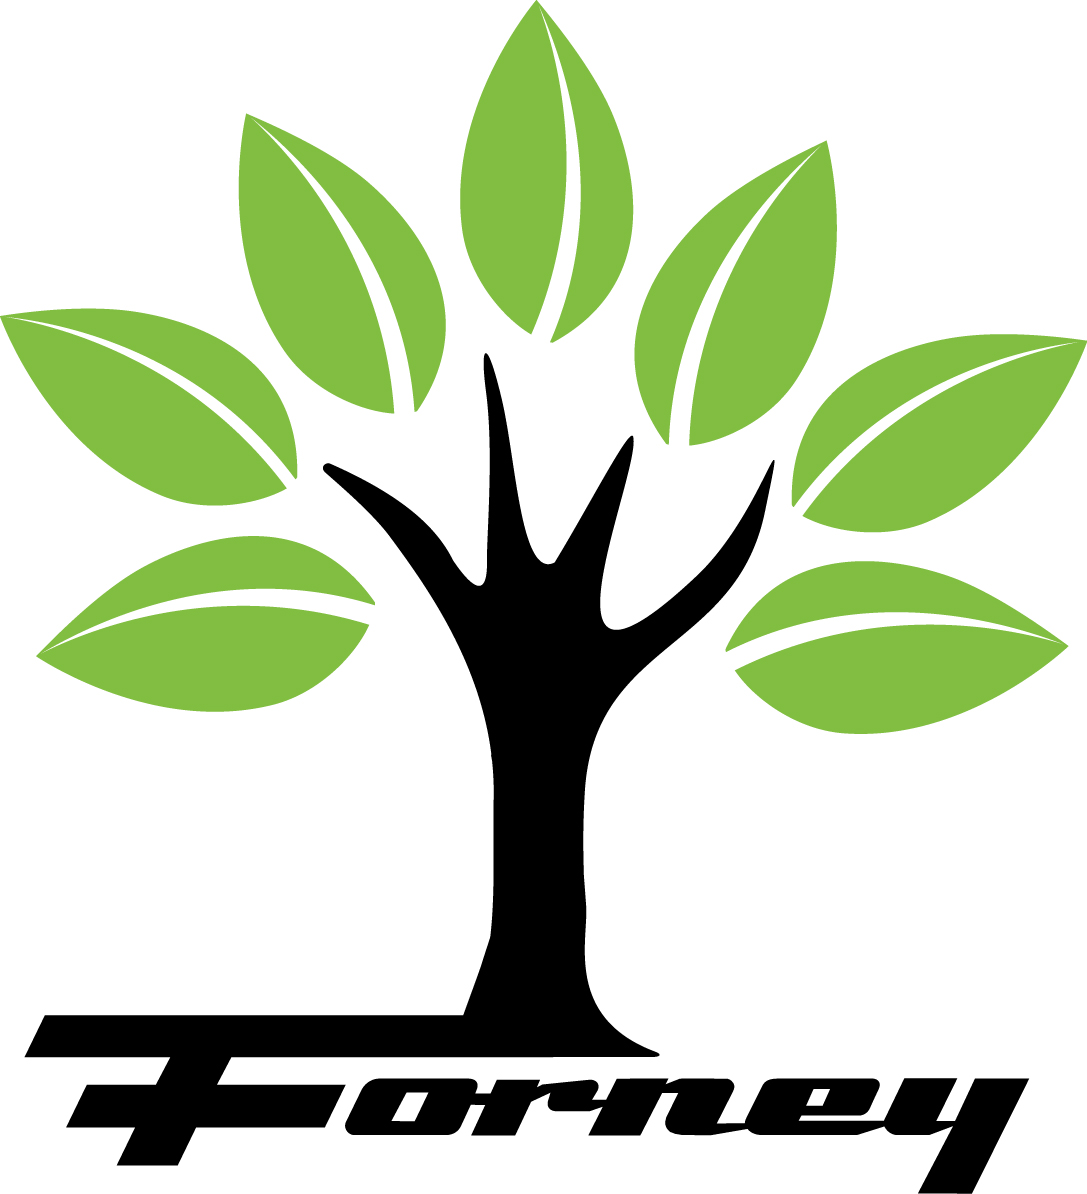 Forney culture logo